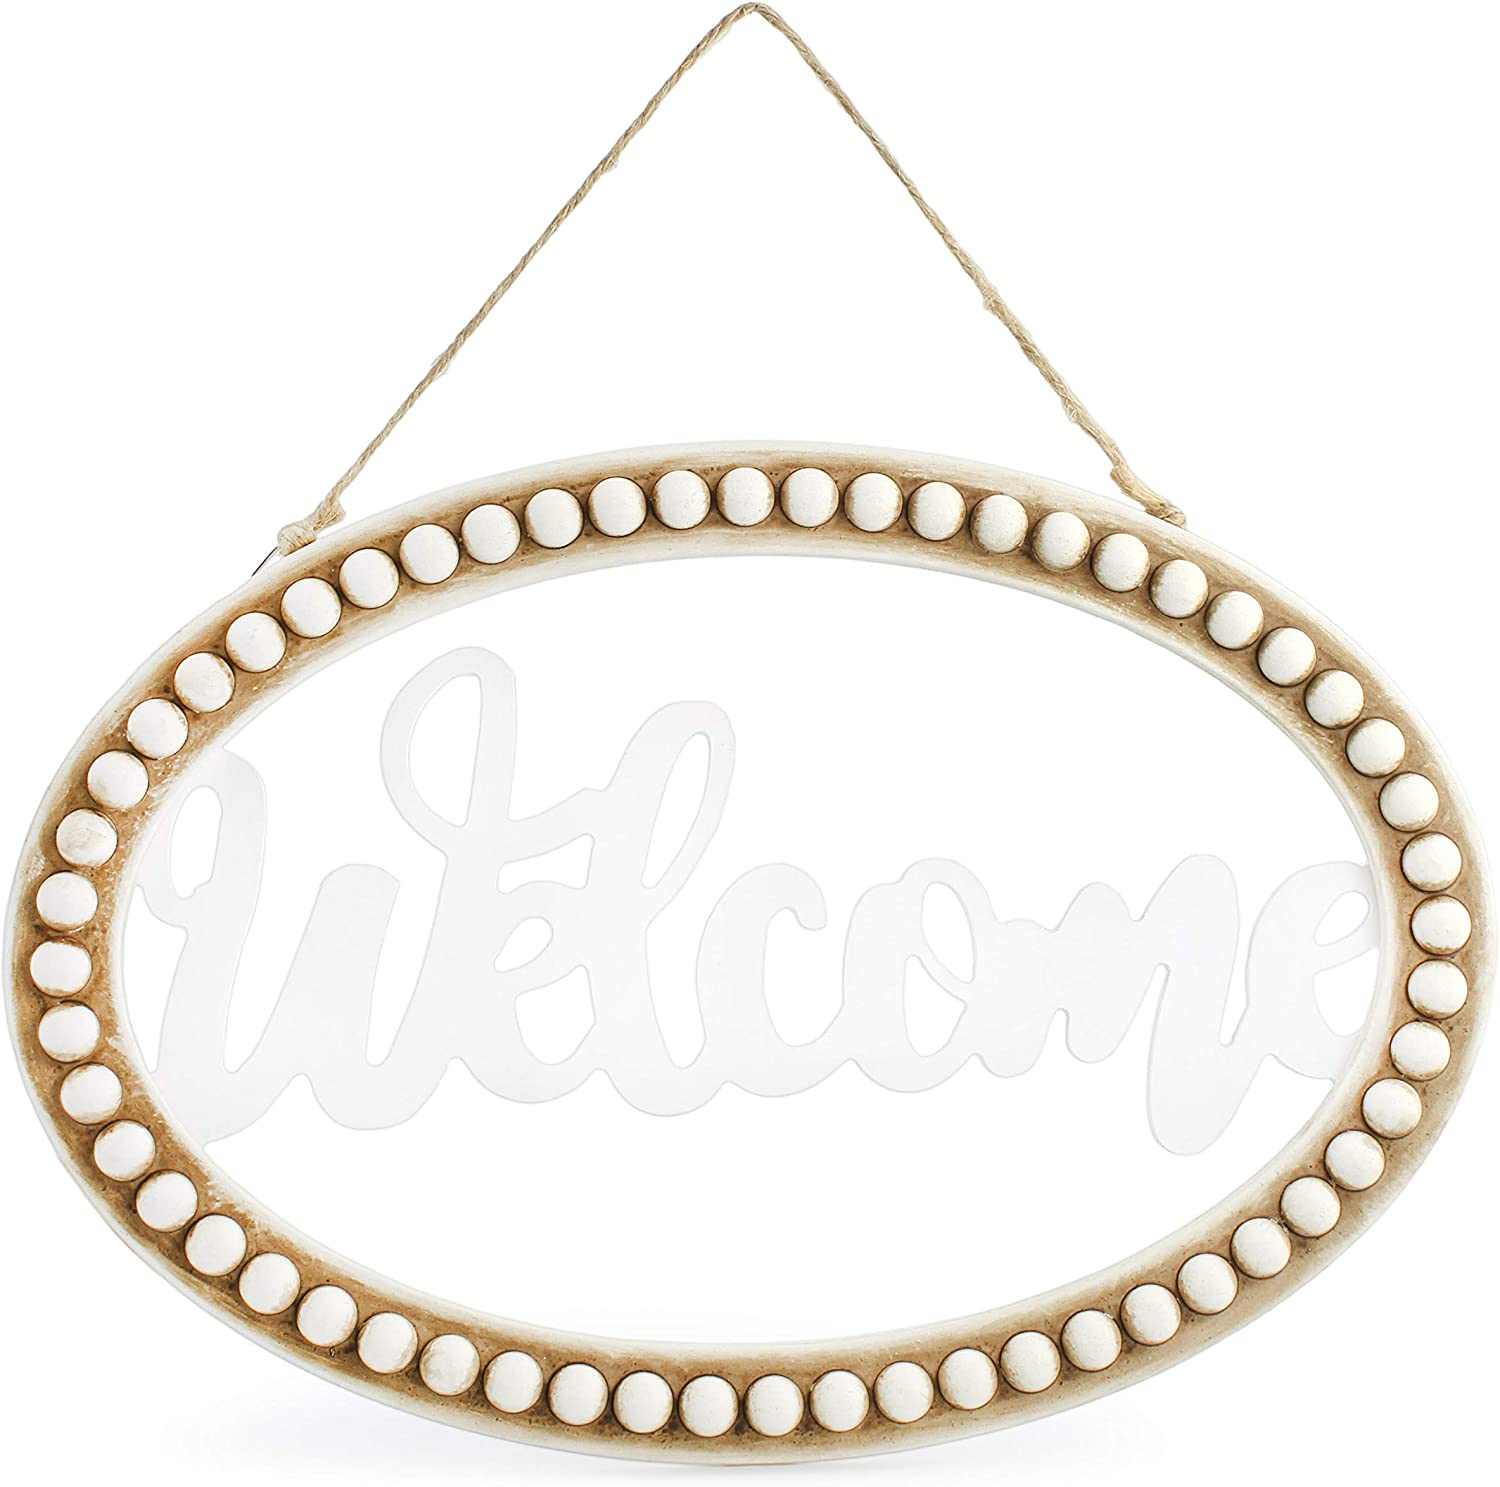 AuldHome Beaded Wooden Welcome Sign, Oval Wood Rustic Farmhouse Wall Decor Plaque, 13 x 9 Inches